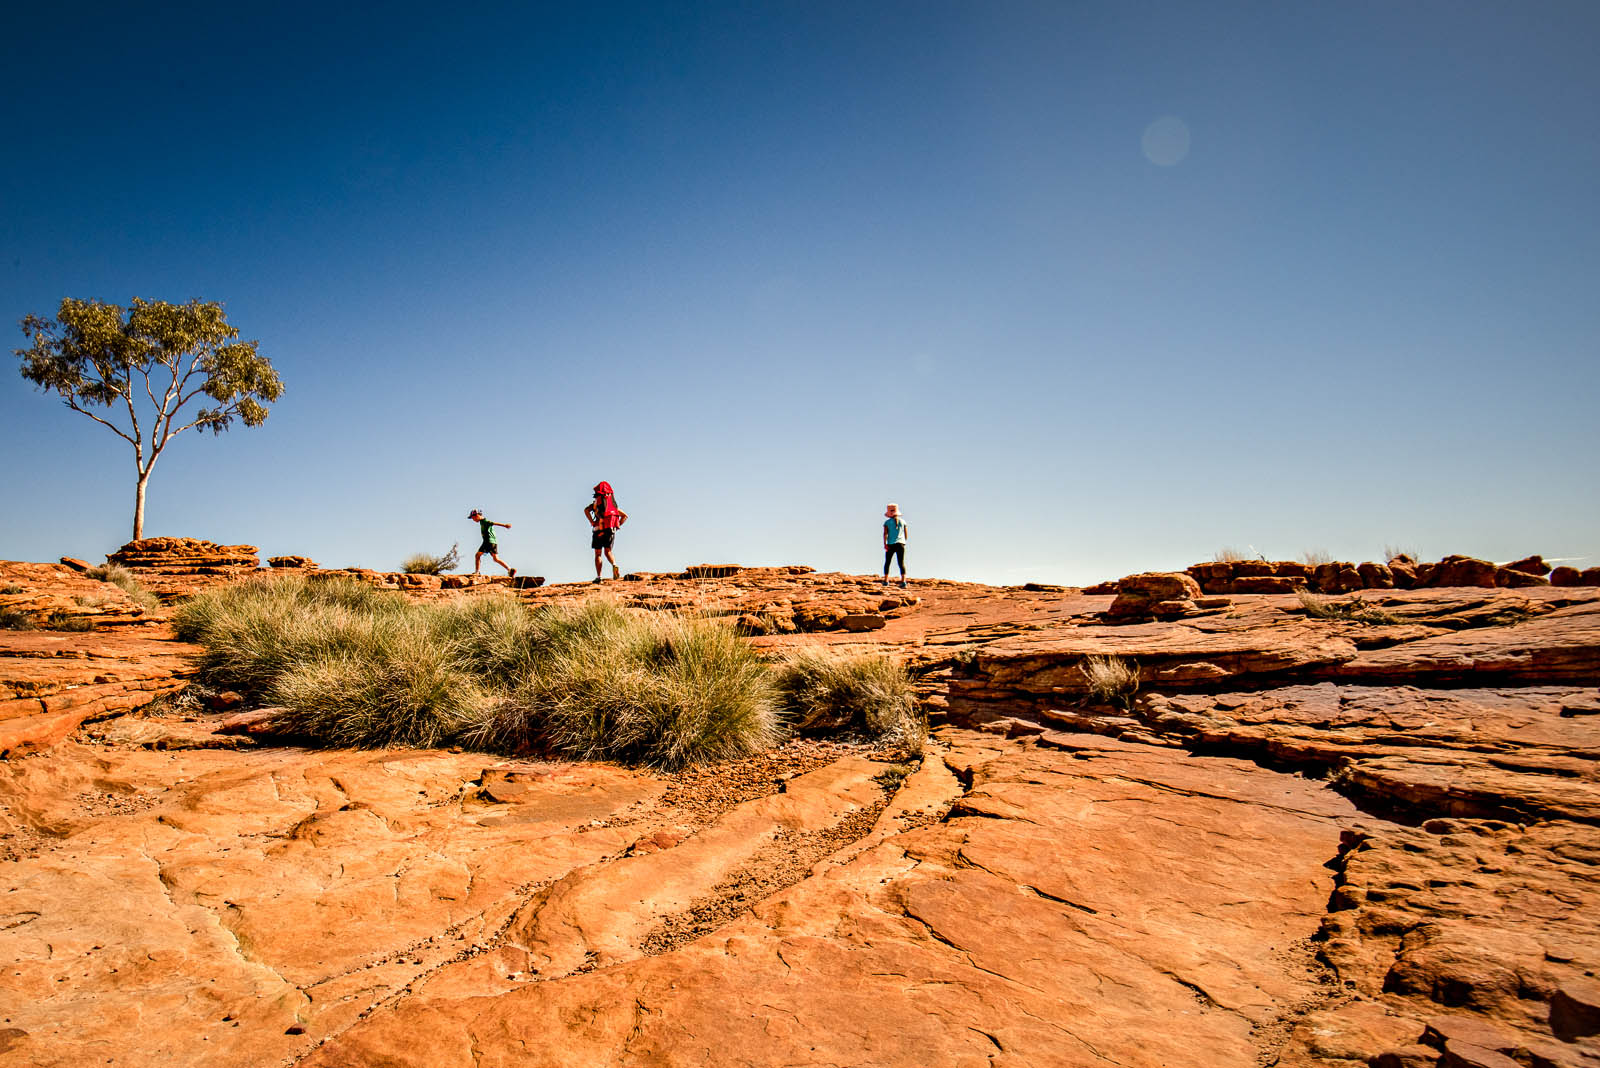 Rim Walk at Kings Canyon in the Australian Outback by Elle Walker